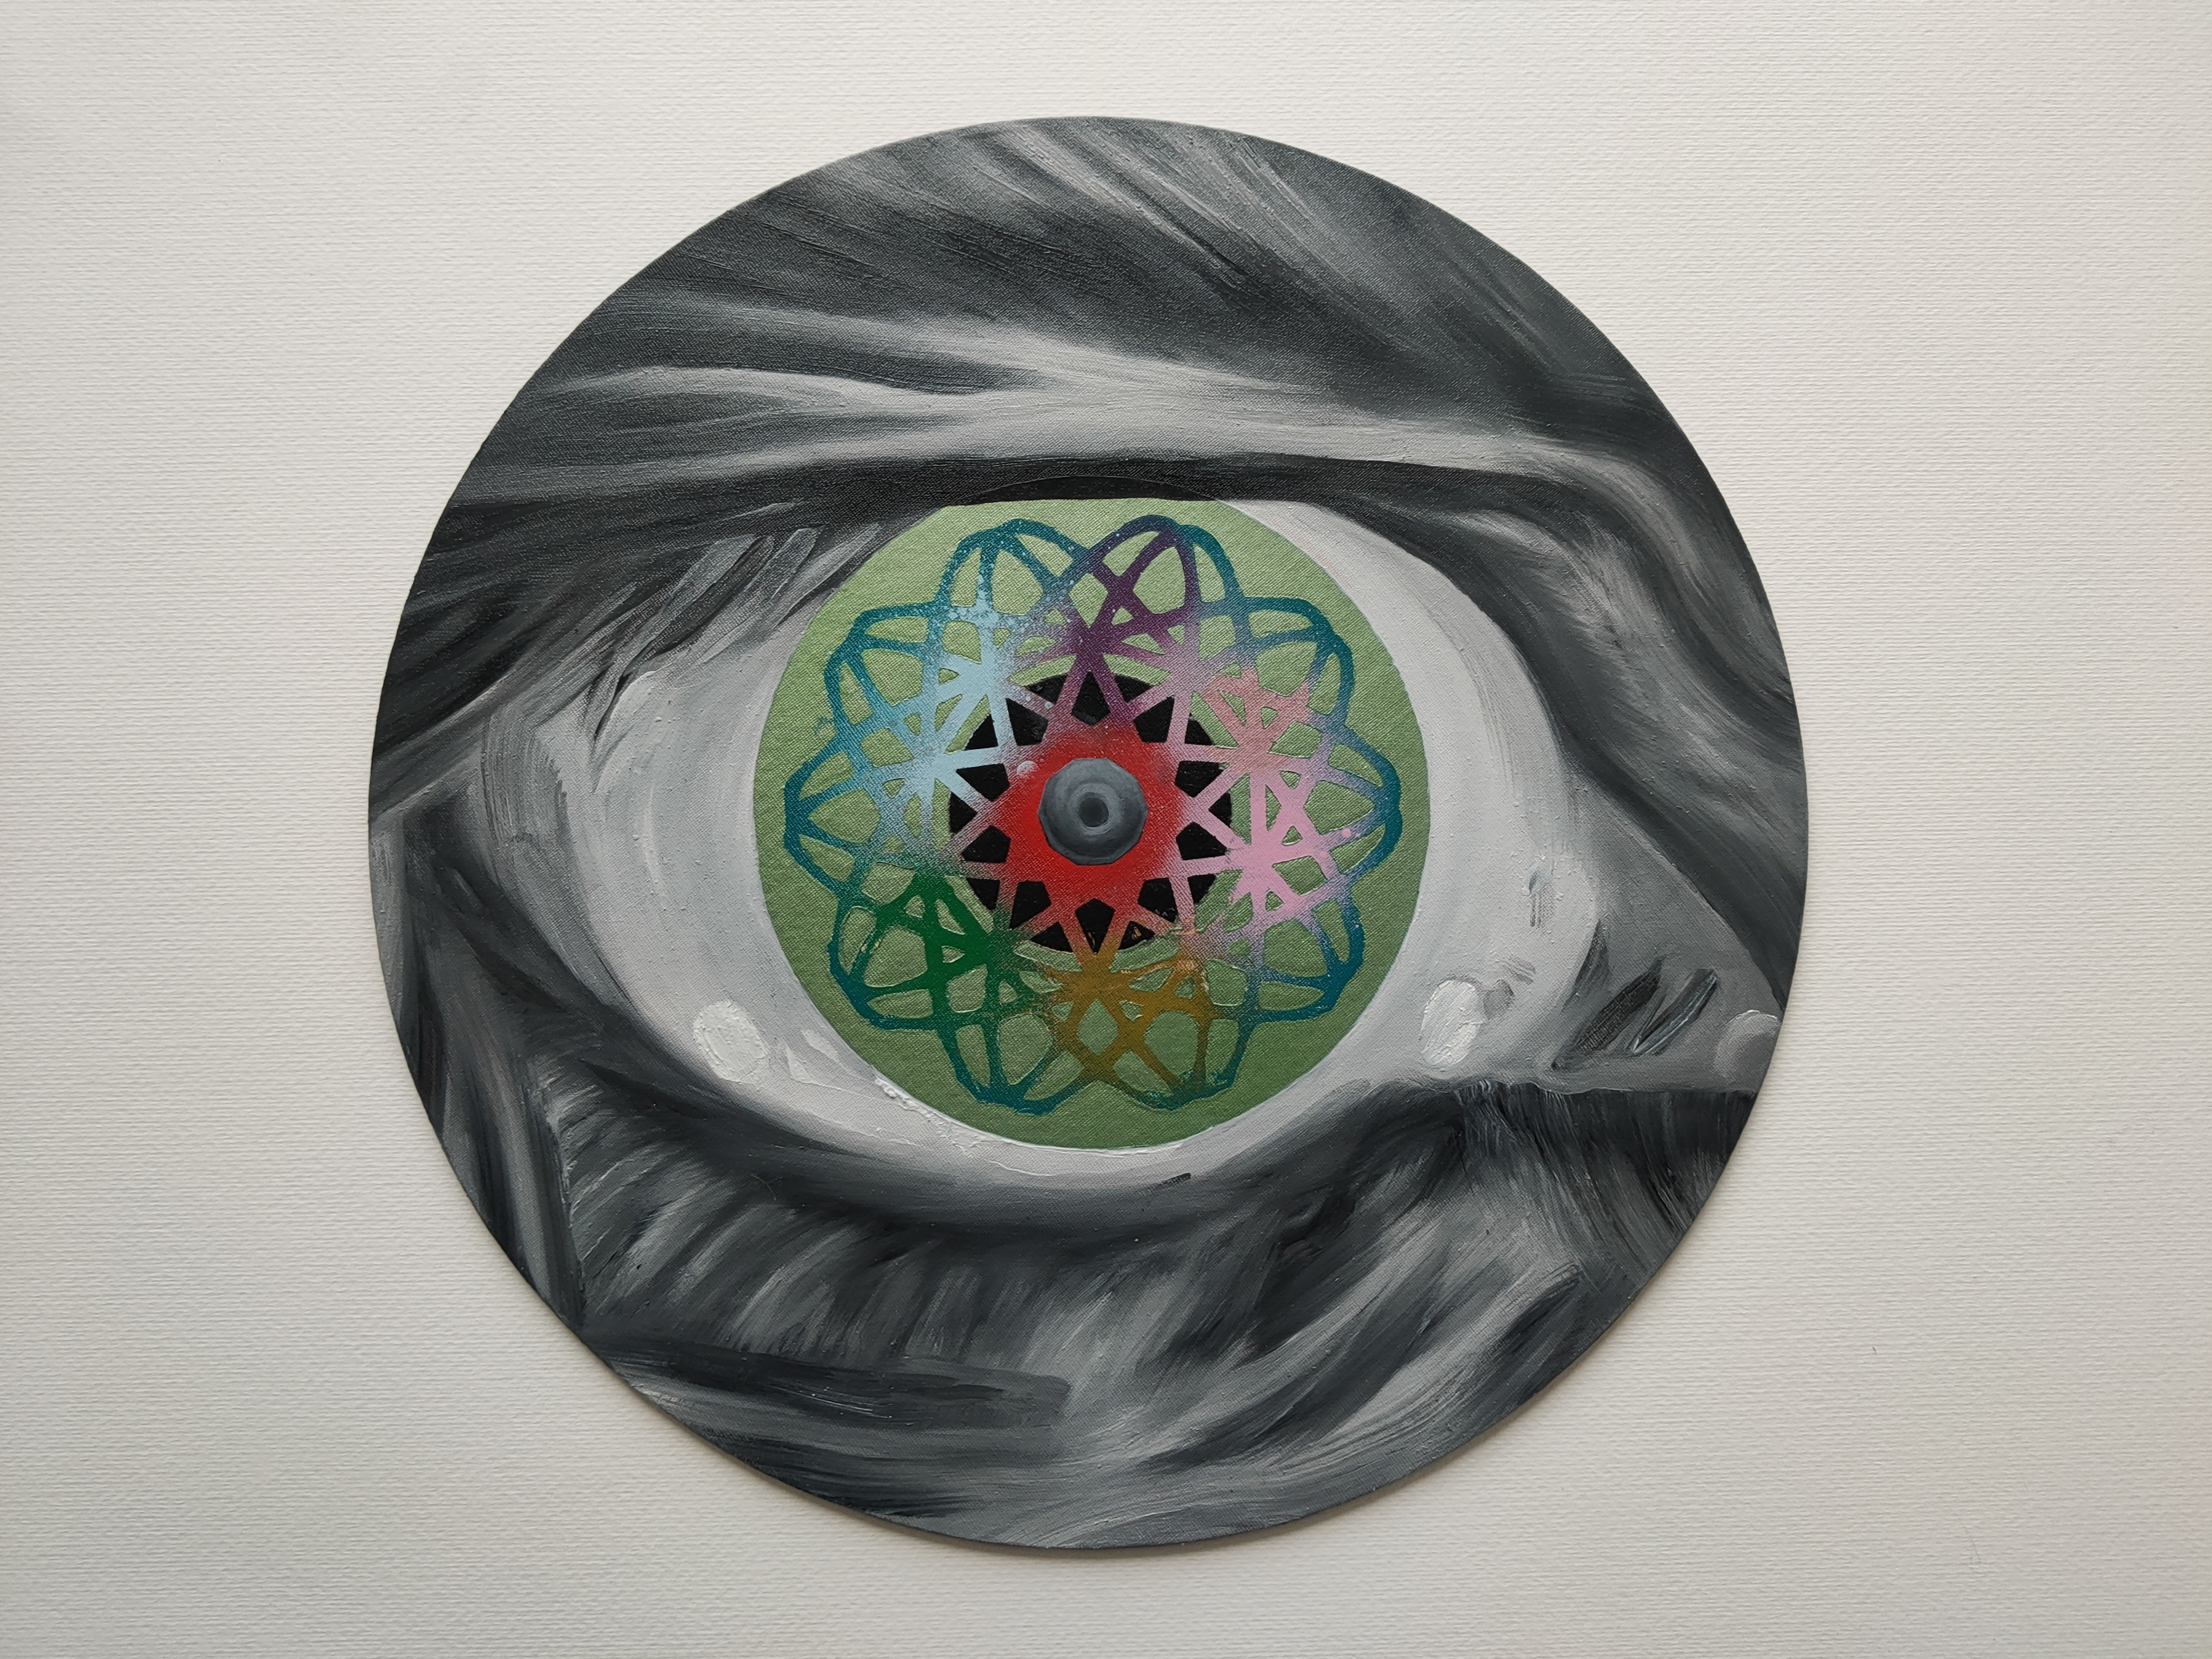 Iris of Why,Marc Molk, 2020, oil and acrylic on canvas board, diameter 15,7 in